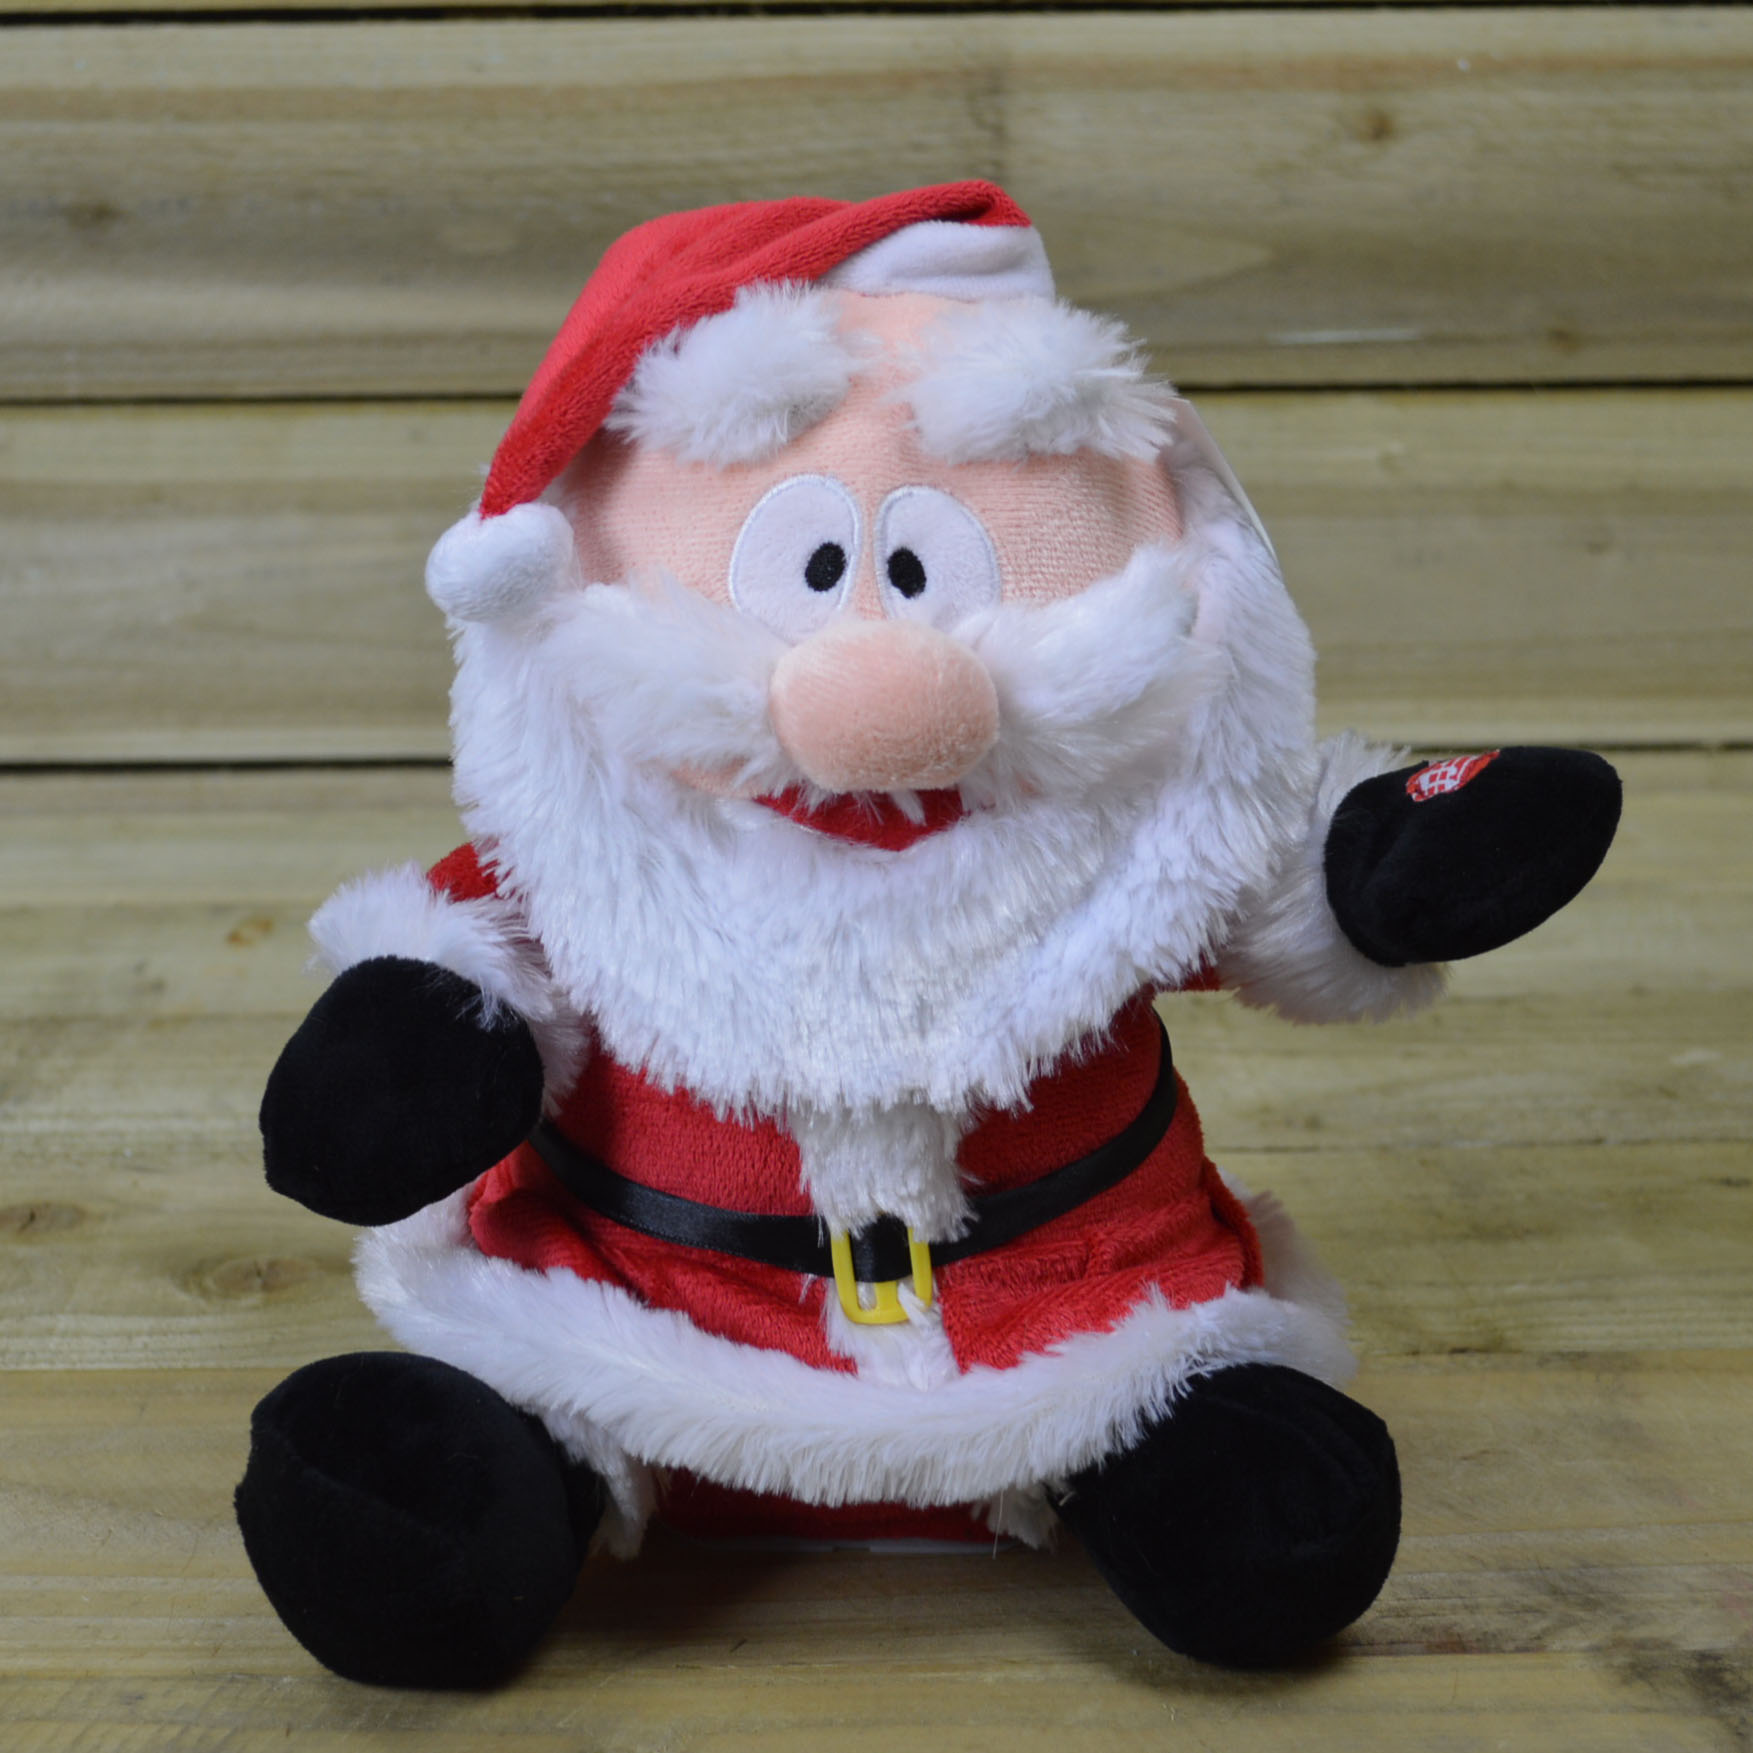 27cm Tall Animated Santa With Moving